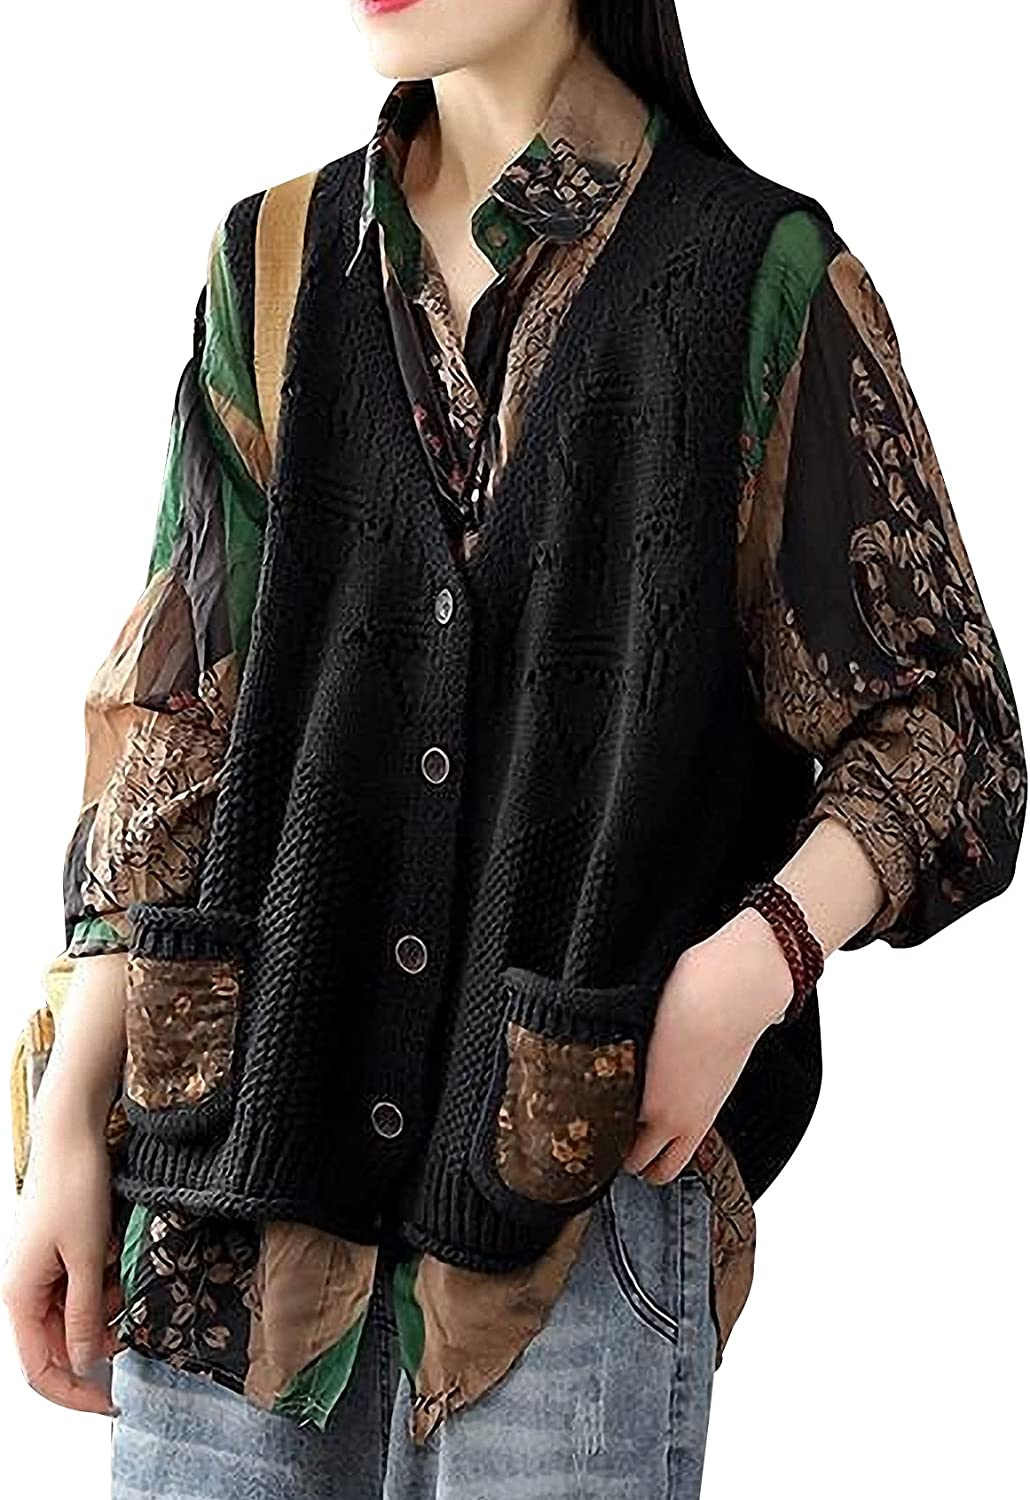 Gihuo Women's Casual Deep V Neck Sleeveless Loose Fit Button Down Sweater Vest Knitwear Tops